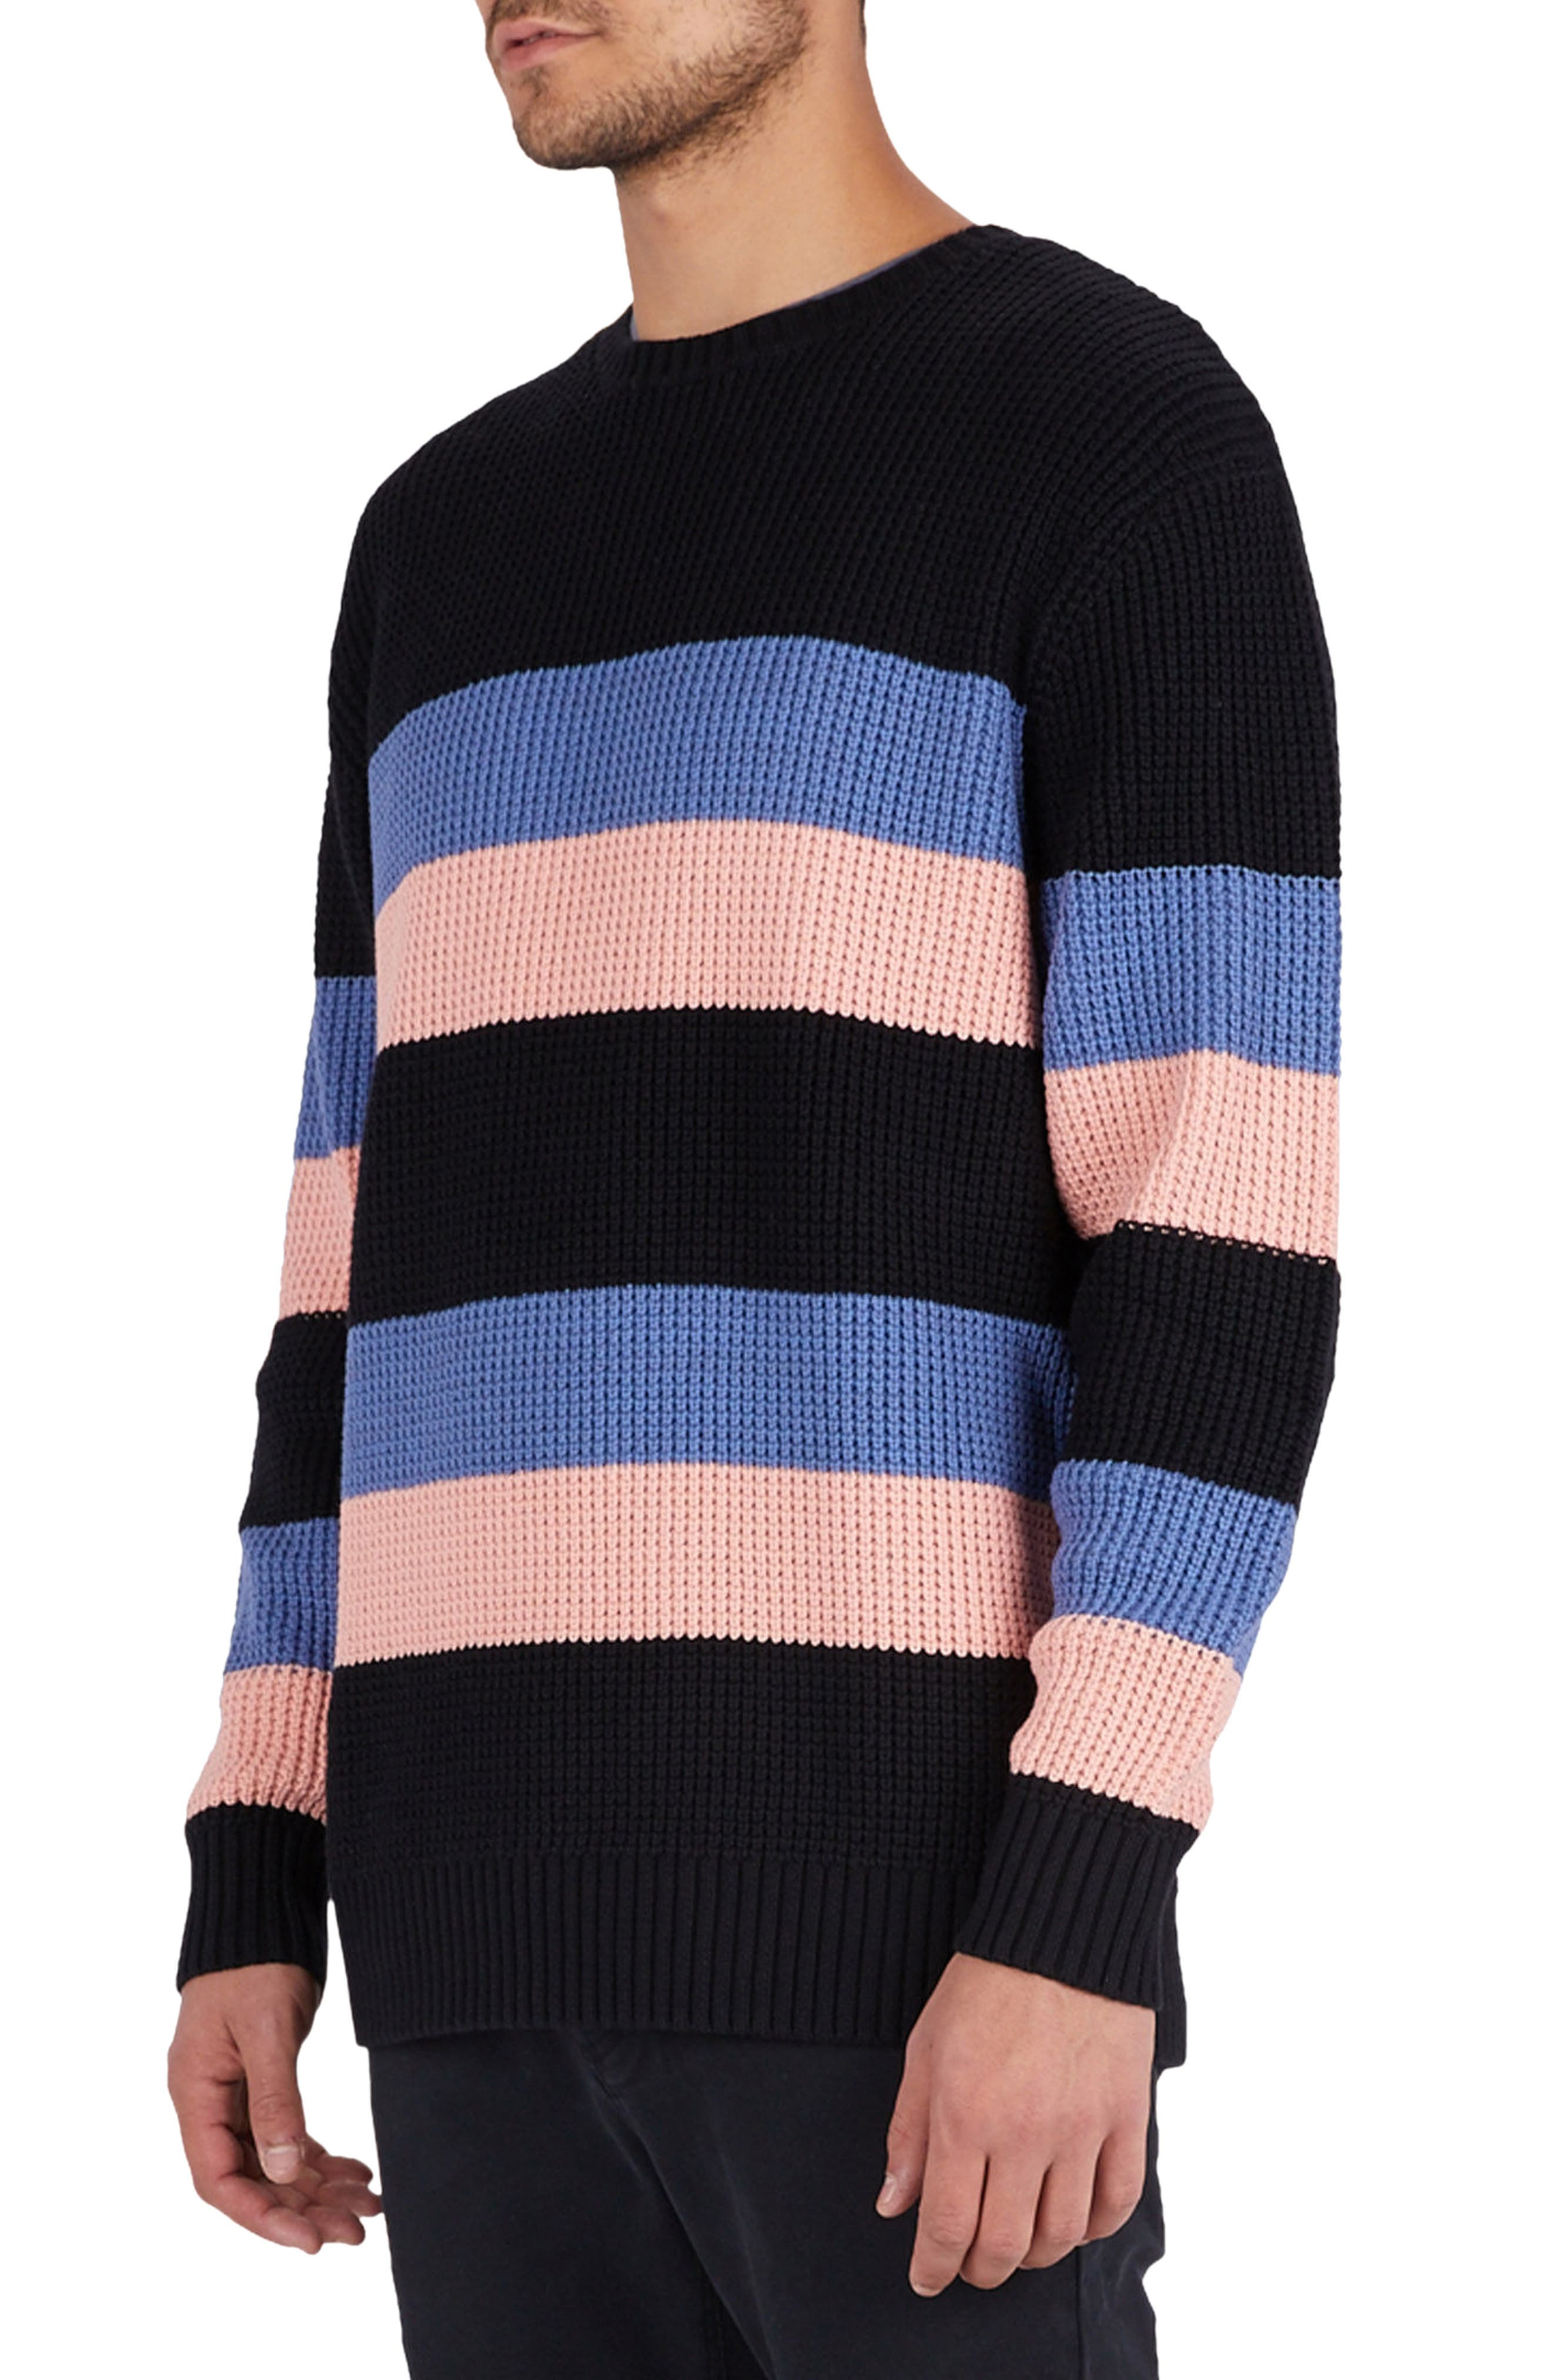 Rugby Stripe Sweater,                             Alternate thumbnail 3, color,                             Black/ Pink